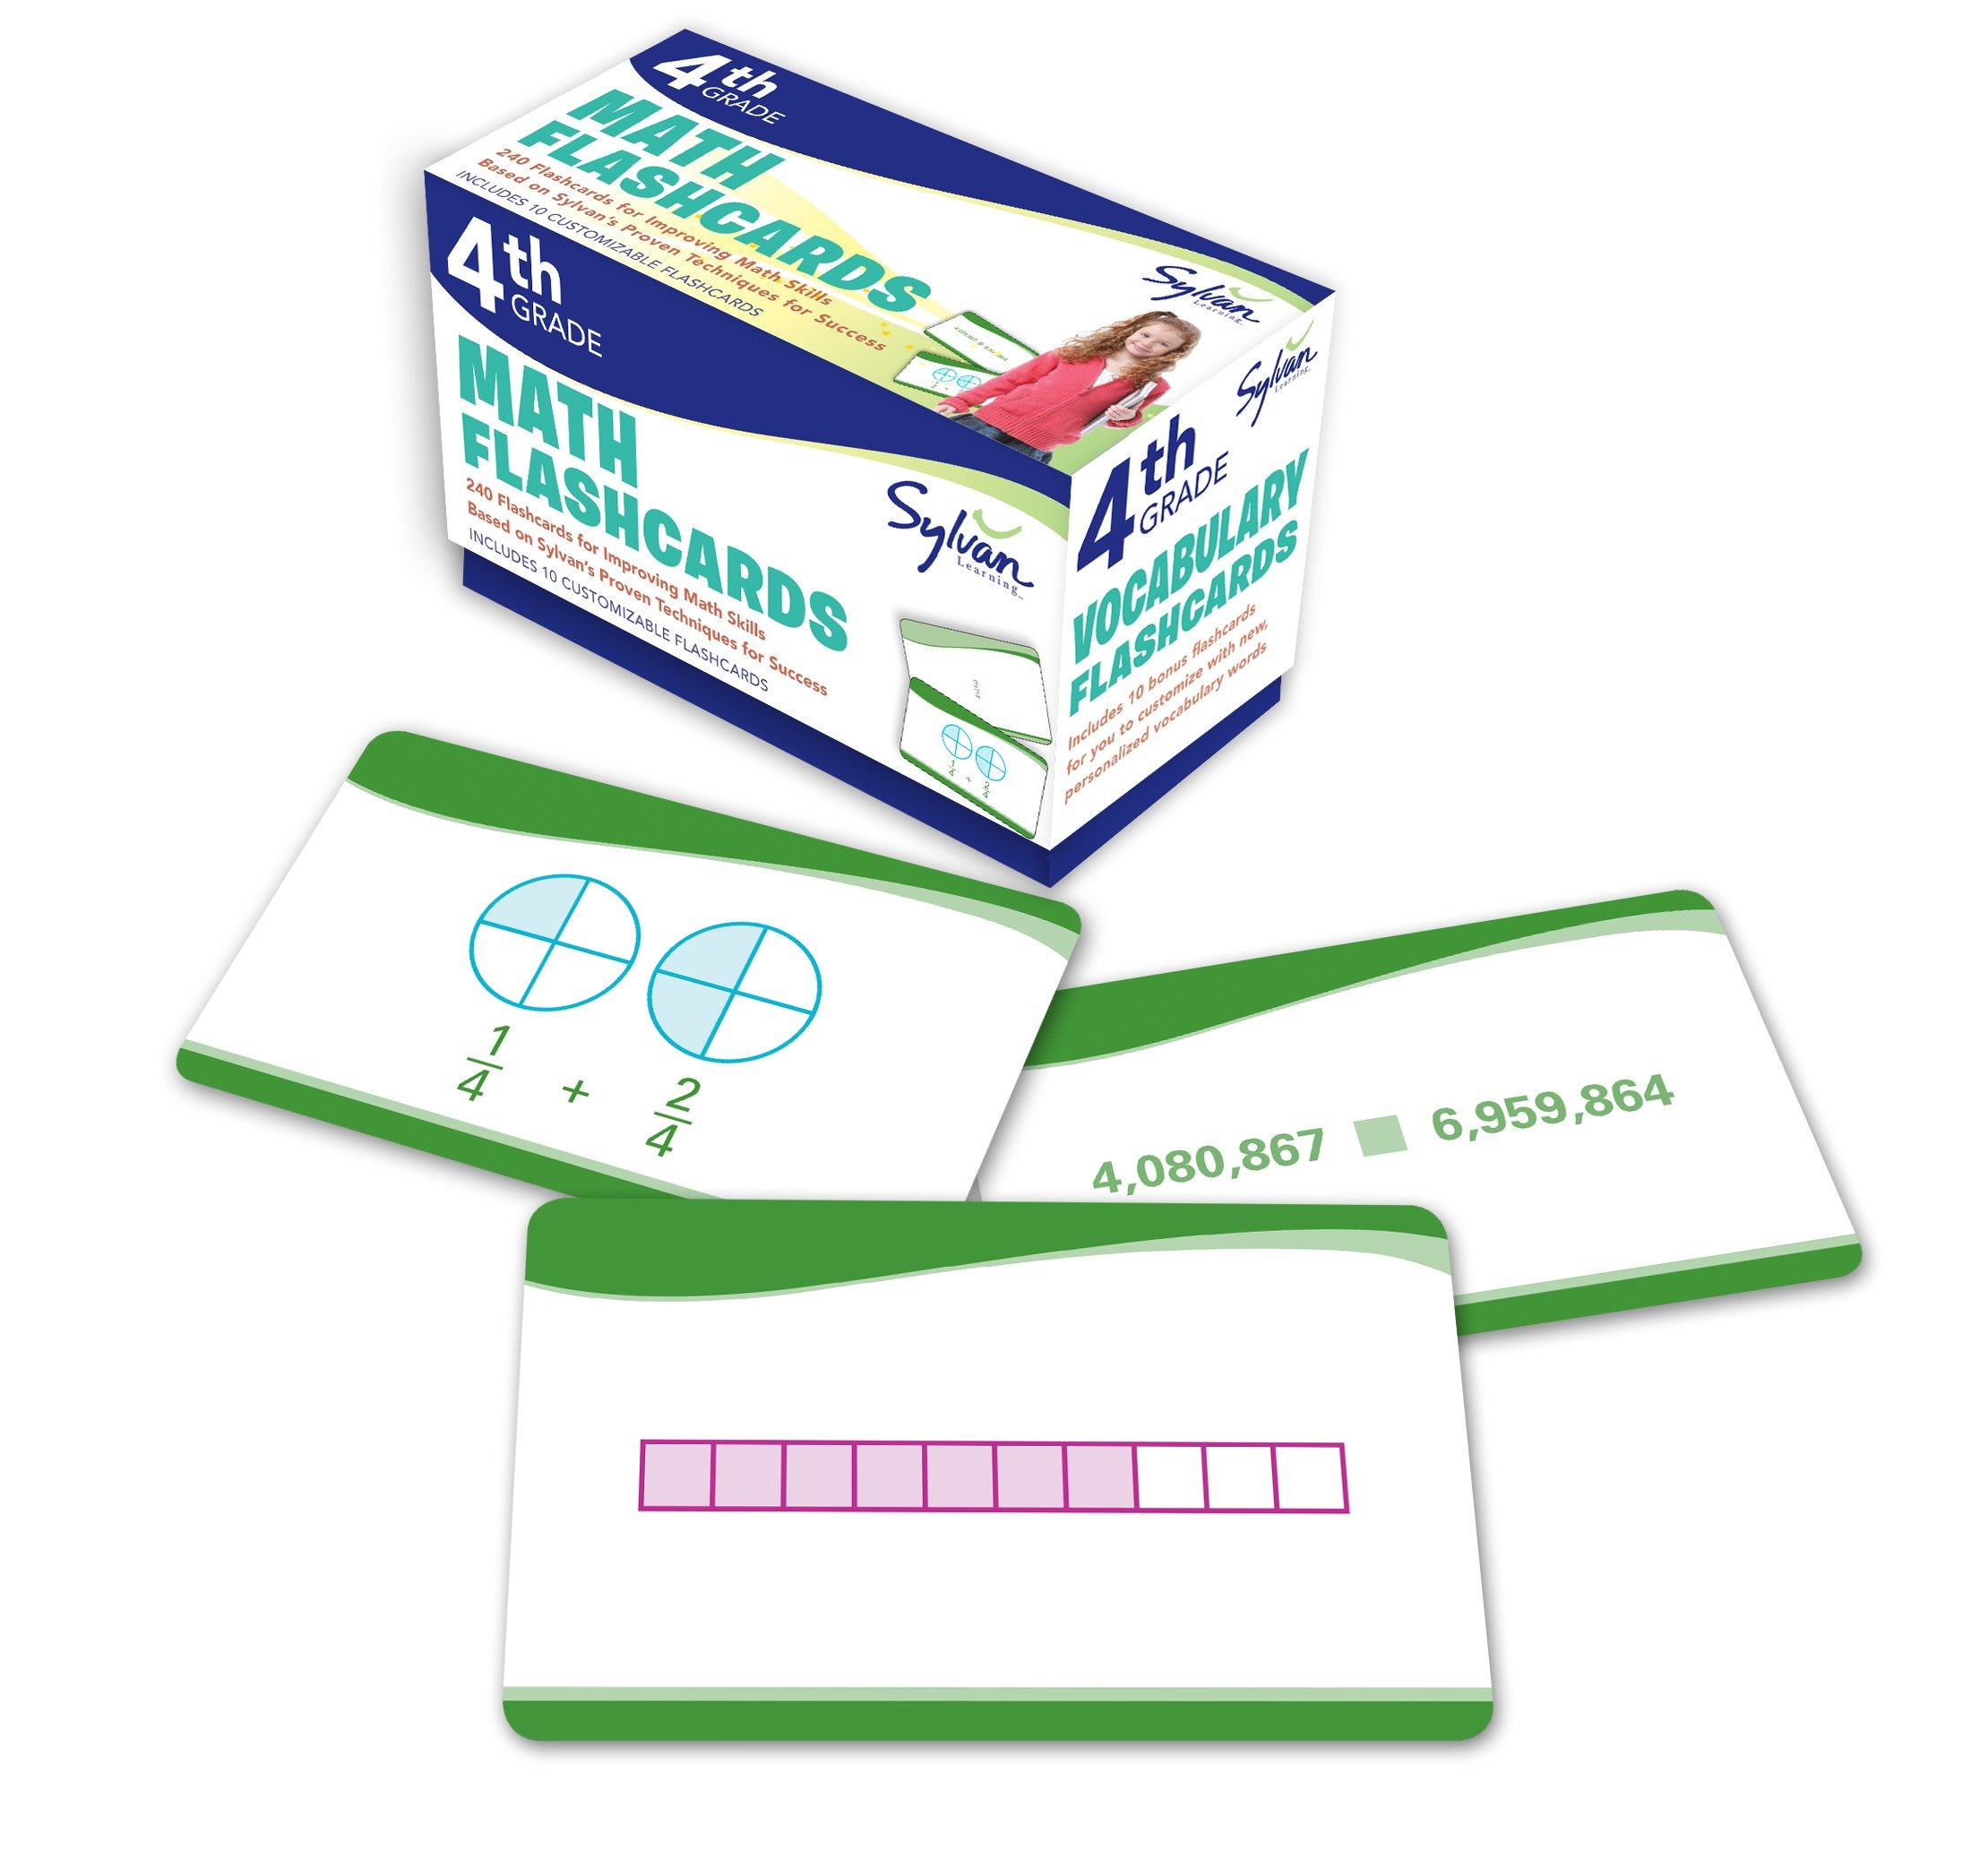 4th Grade Math Flashcards : 240 Flashcards for Improving Math Skills Based on Sylvan's Proven Techniques for Success